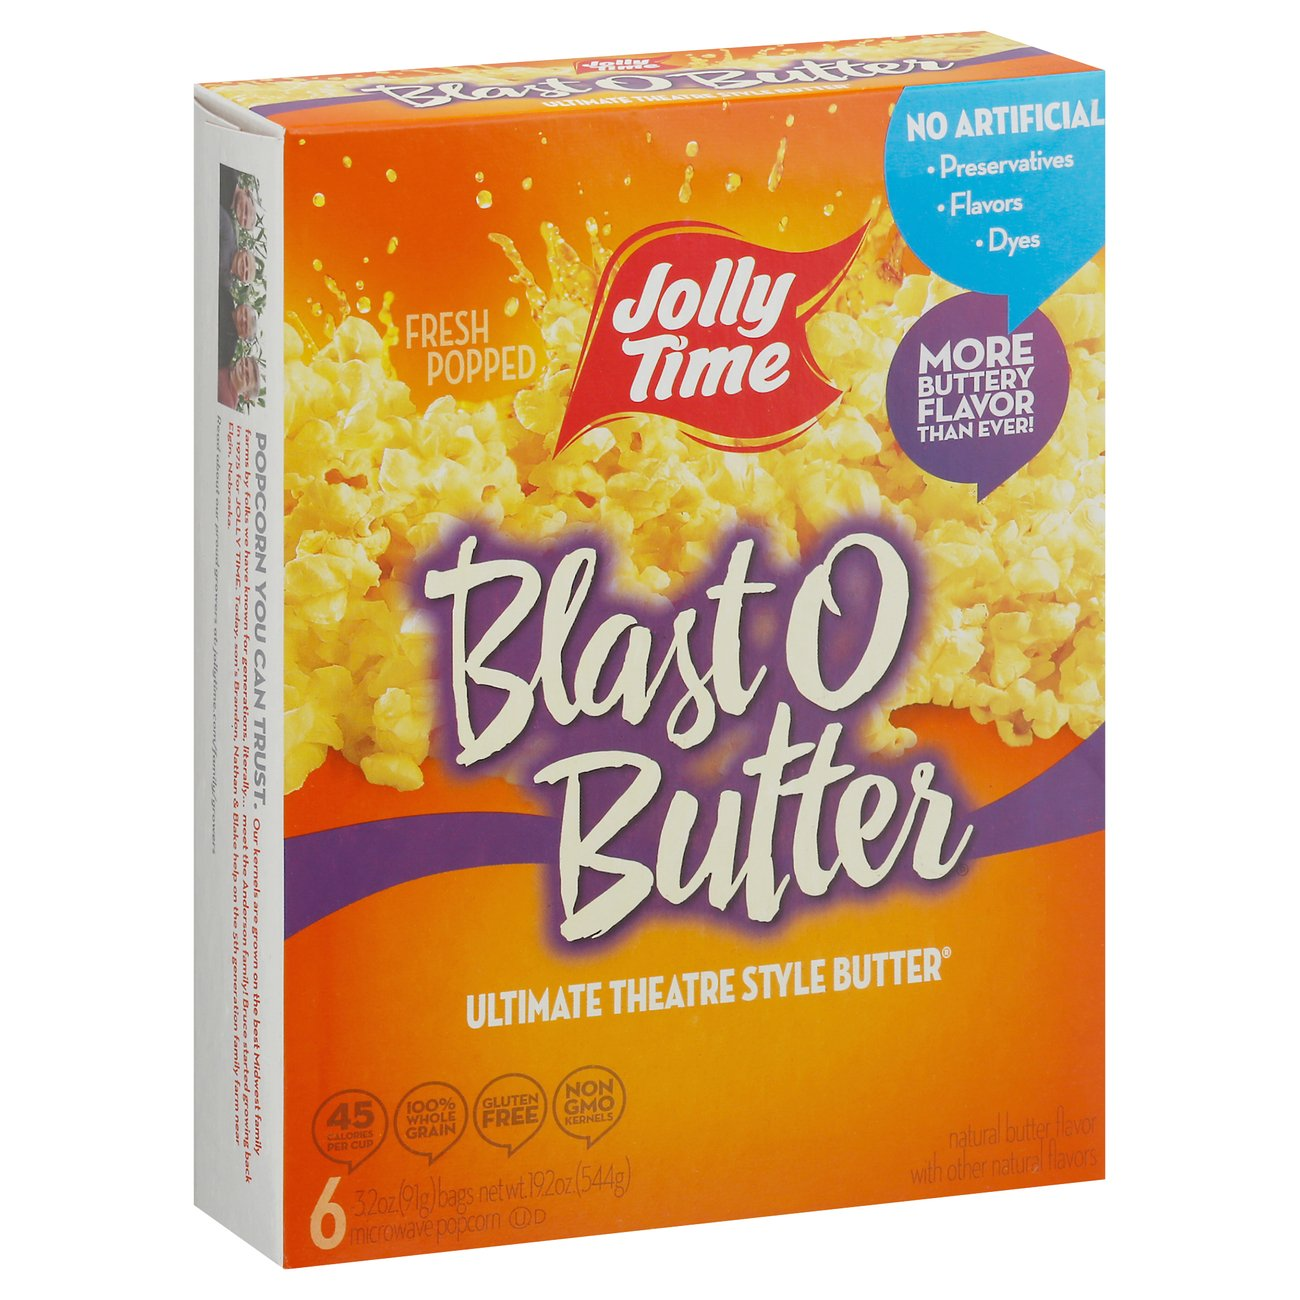 Jolly Time Blast O Butter Ultimate Theatre Style Butter Microwave Popcorn - Shop Popcorn at H-E-B